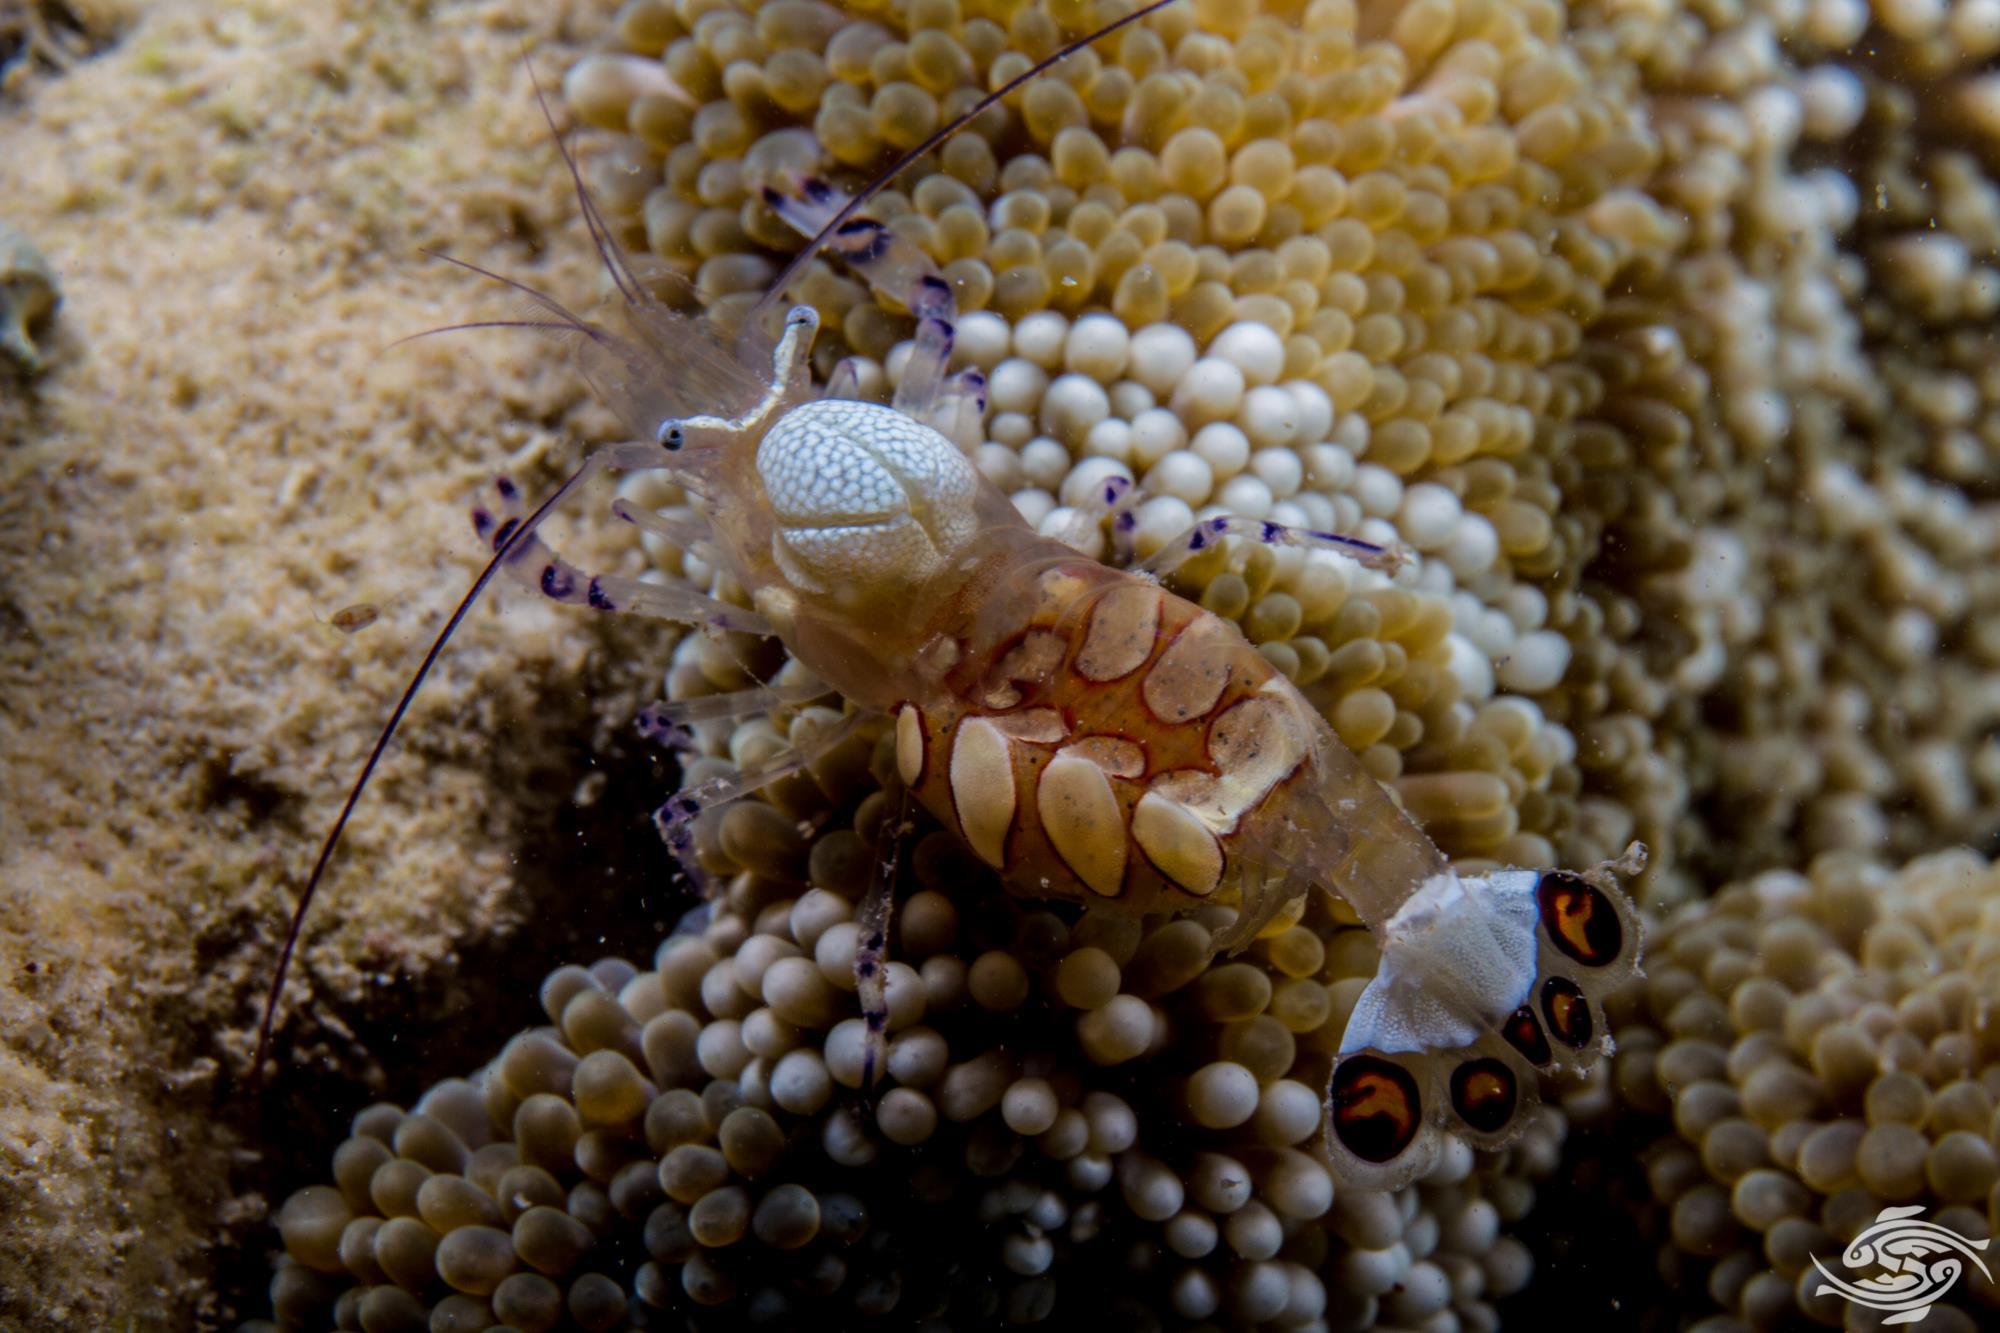 Pacific Clown Anemone Shrimp (Periclimenes brevicarpalis)